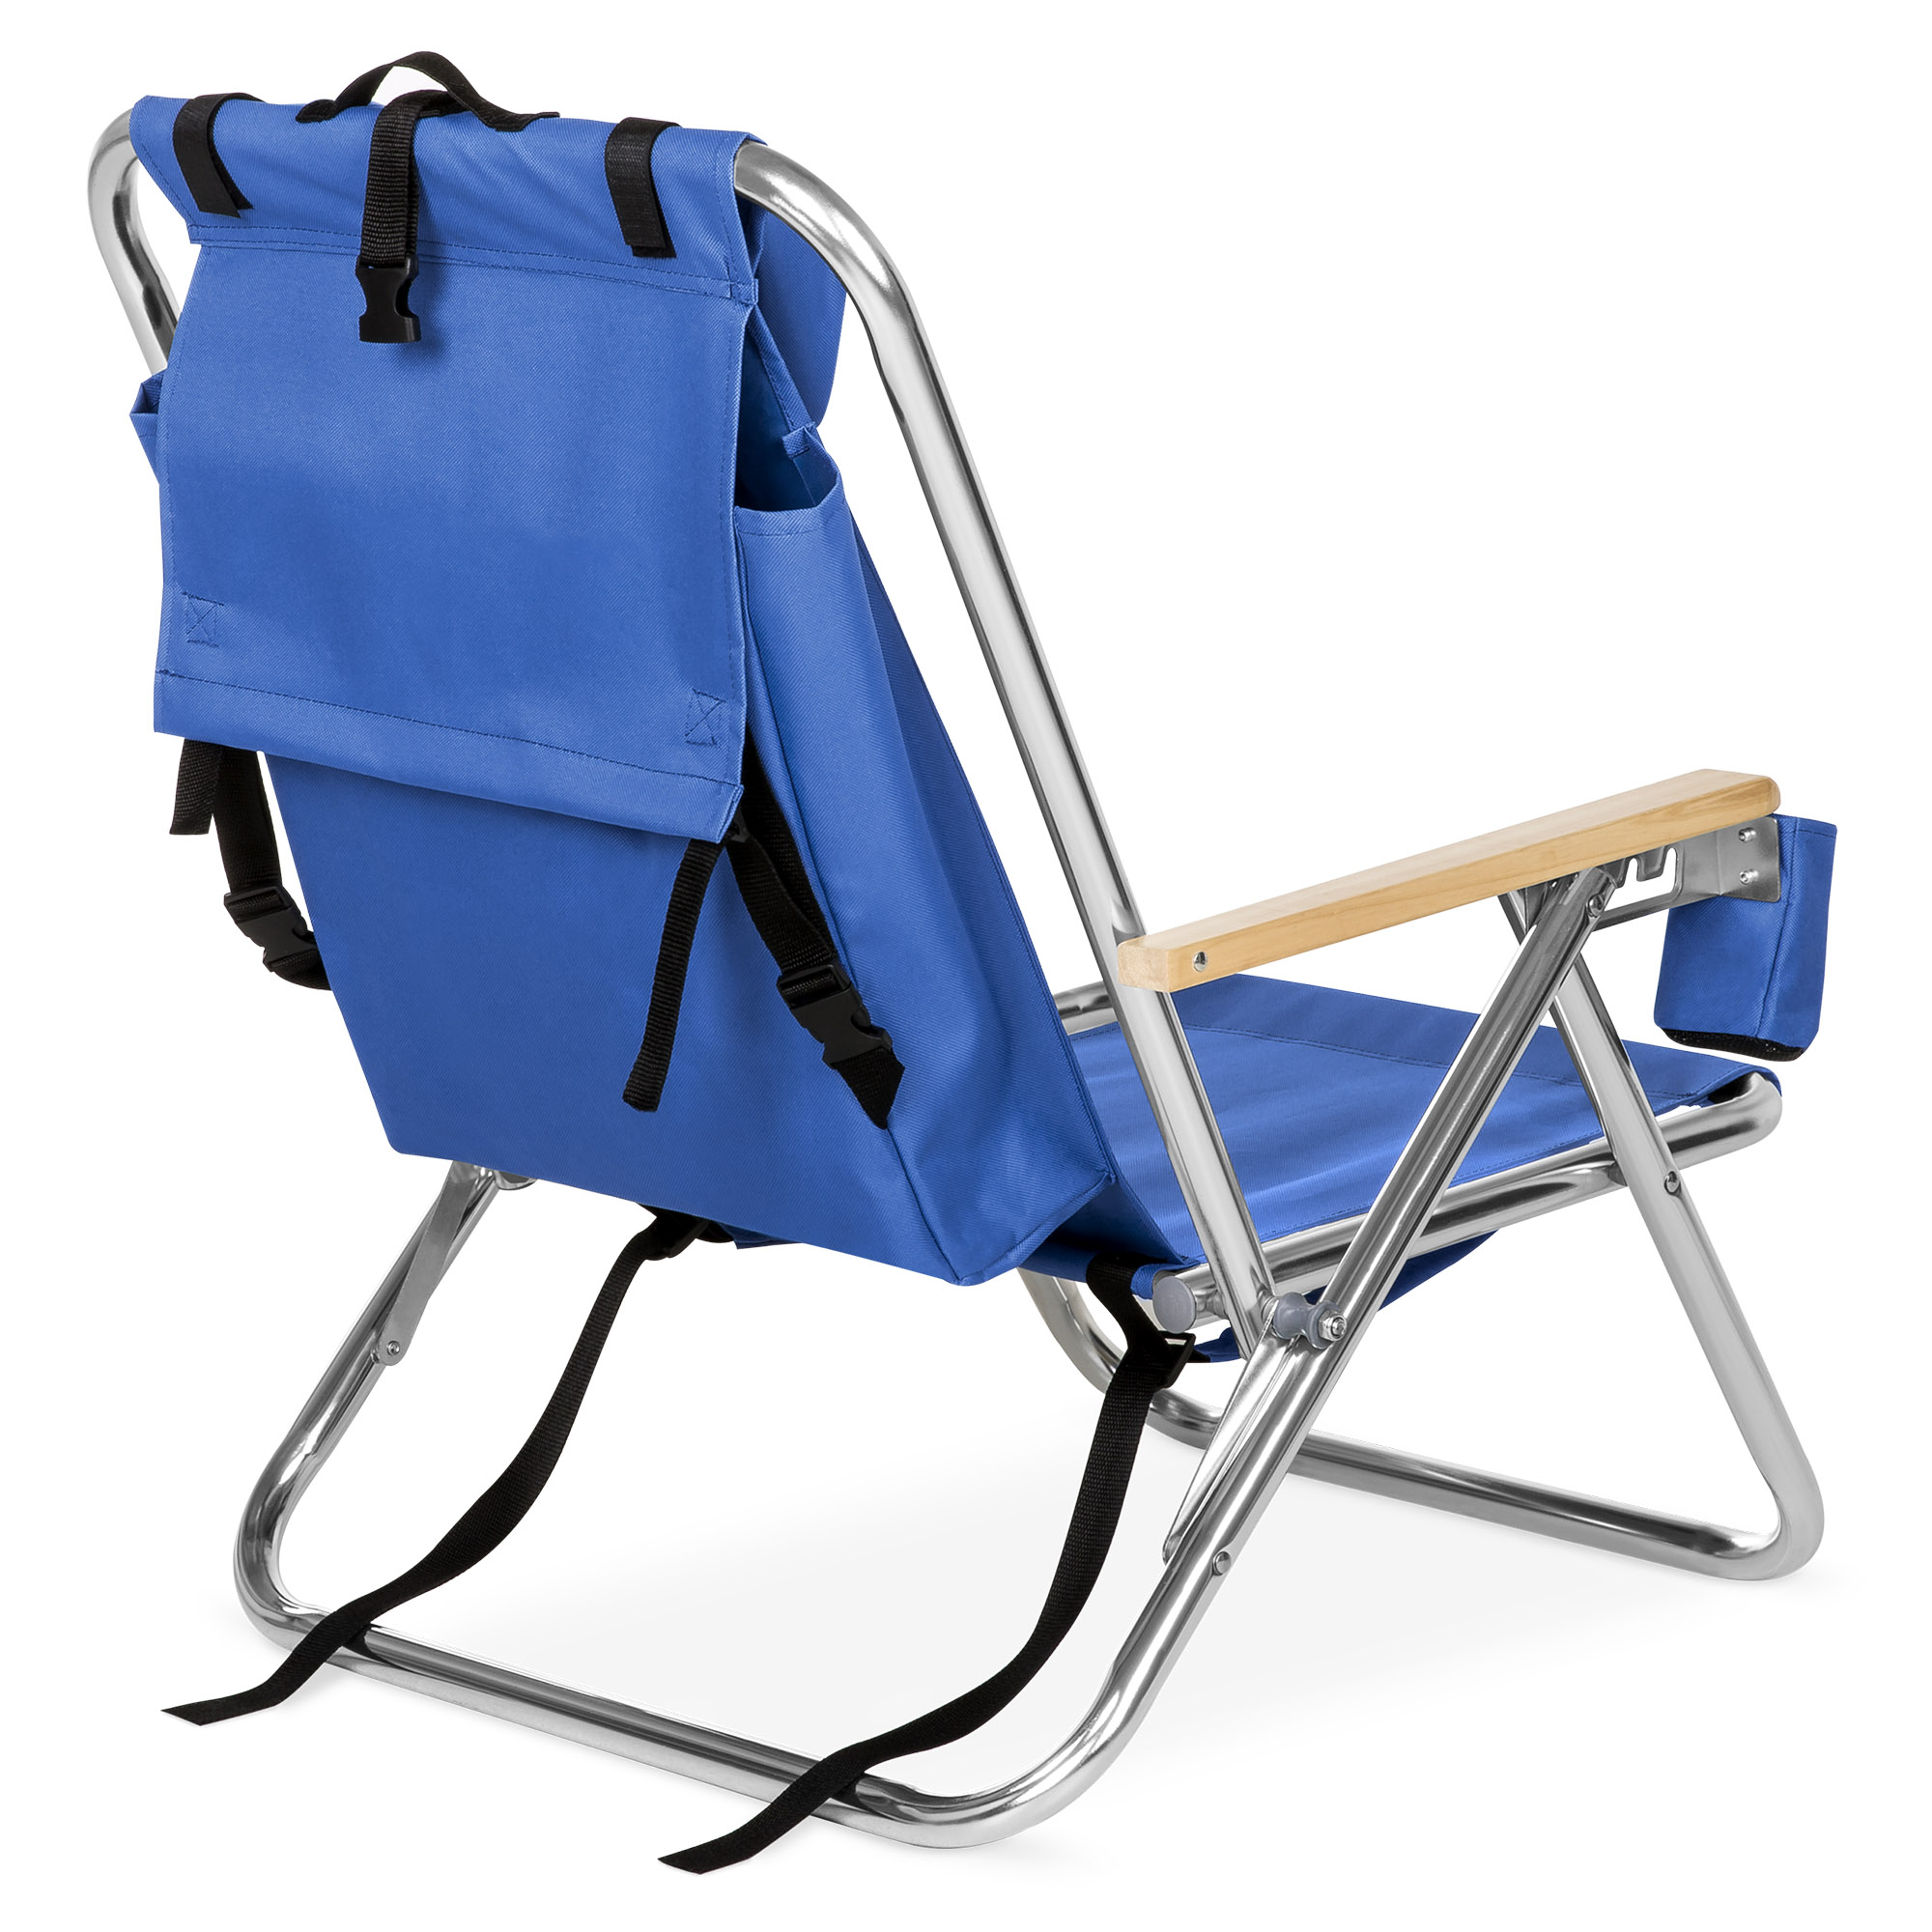 Bcp Folding Seat Backpack Chair W Padded Headrest Cup